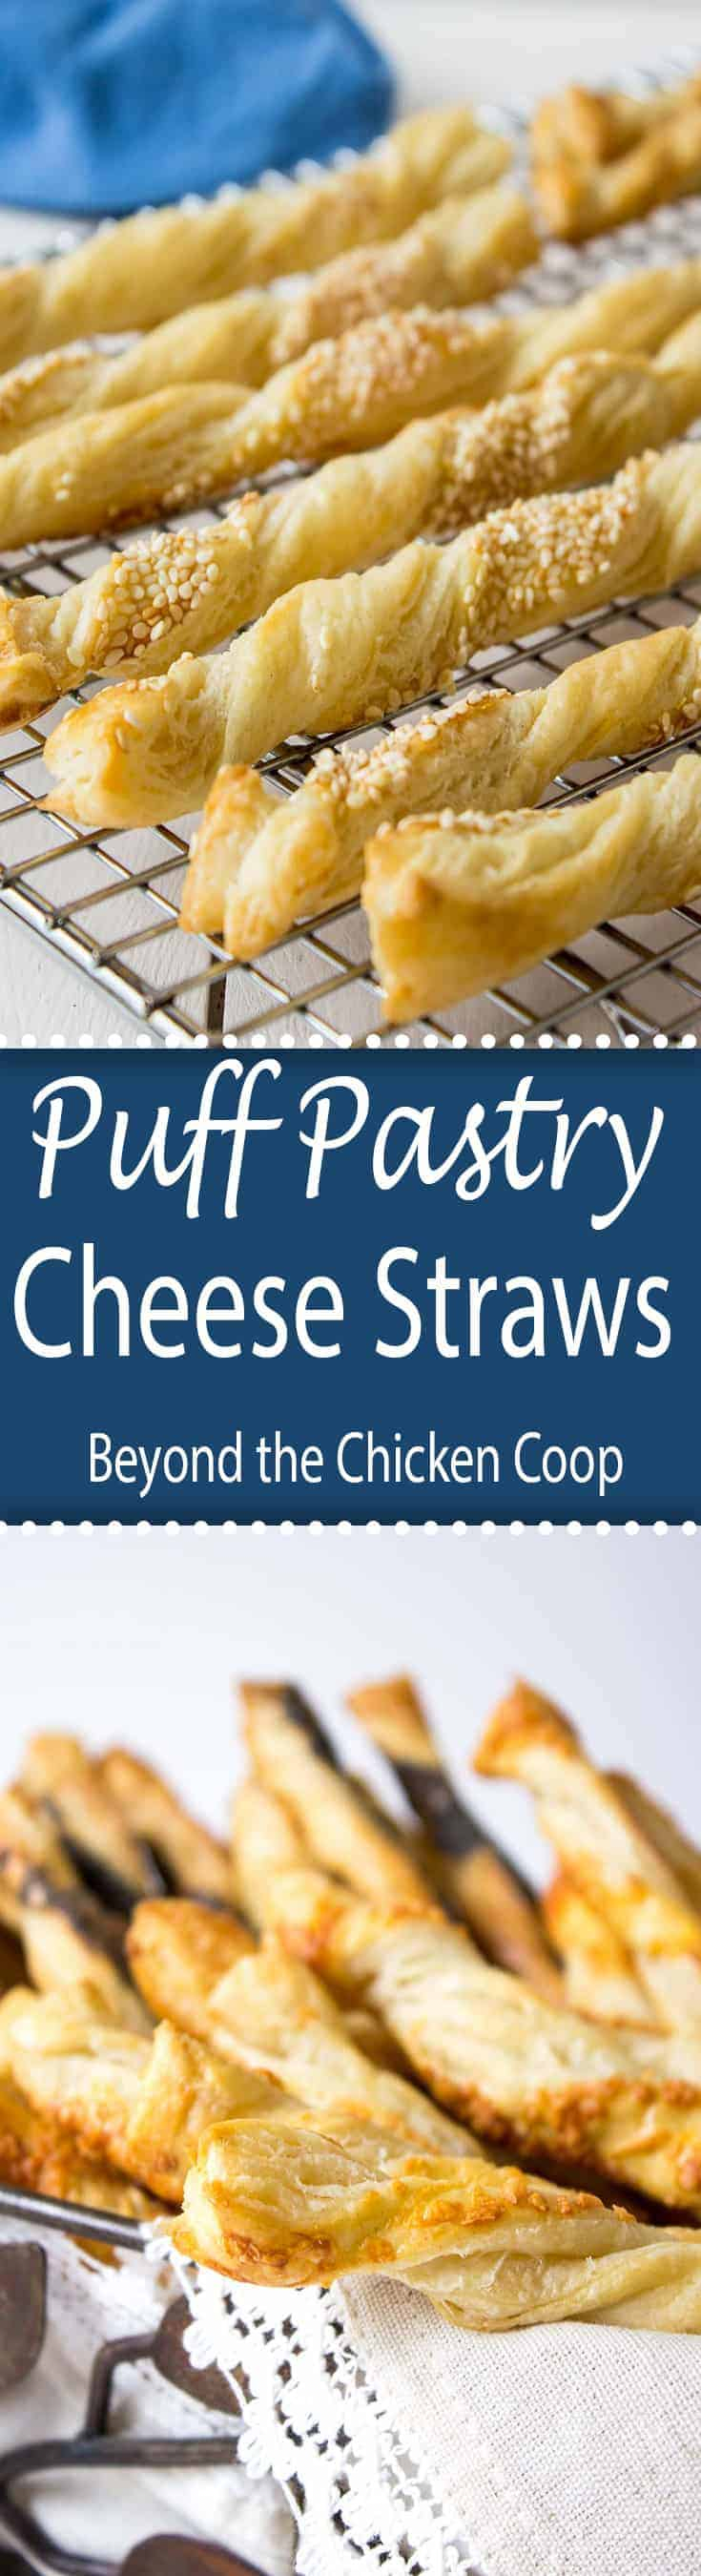 Puff pastry straws make an impressive appetizer for any occasion. Top with sesame seeds, poppy seeds or Parmesan cheese.